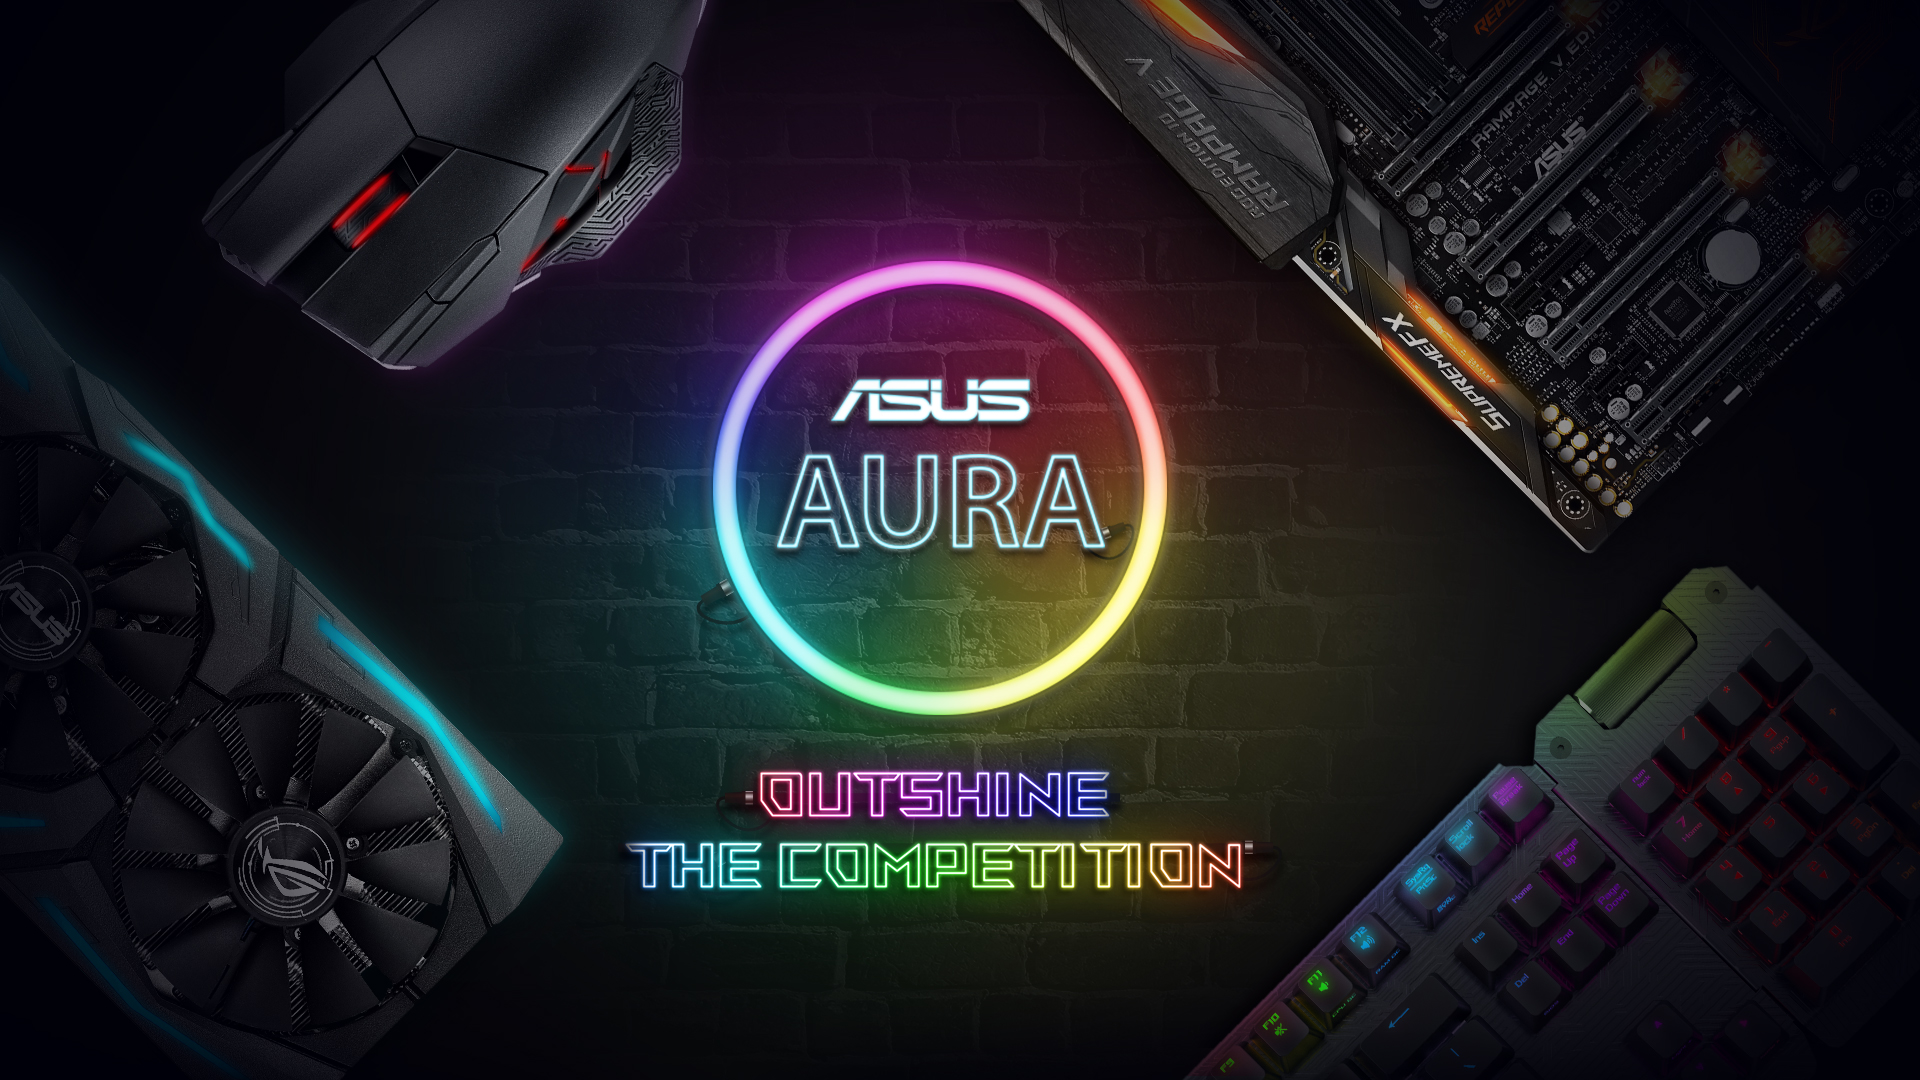 Asus Aura Outshine The Competition Circuit Board Mouse Pad Motherboard Geekery Sync Win Dream Pc Peripherals